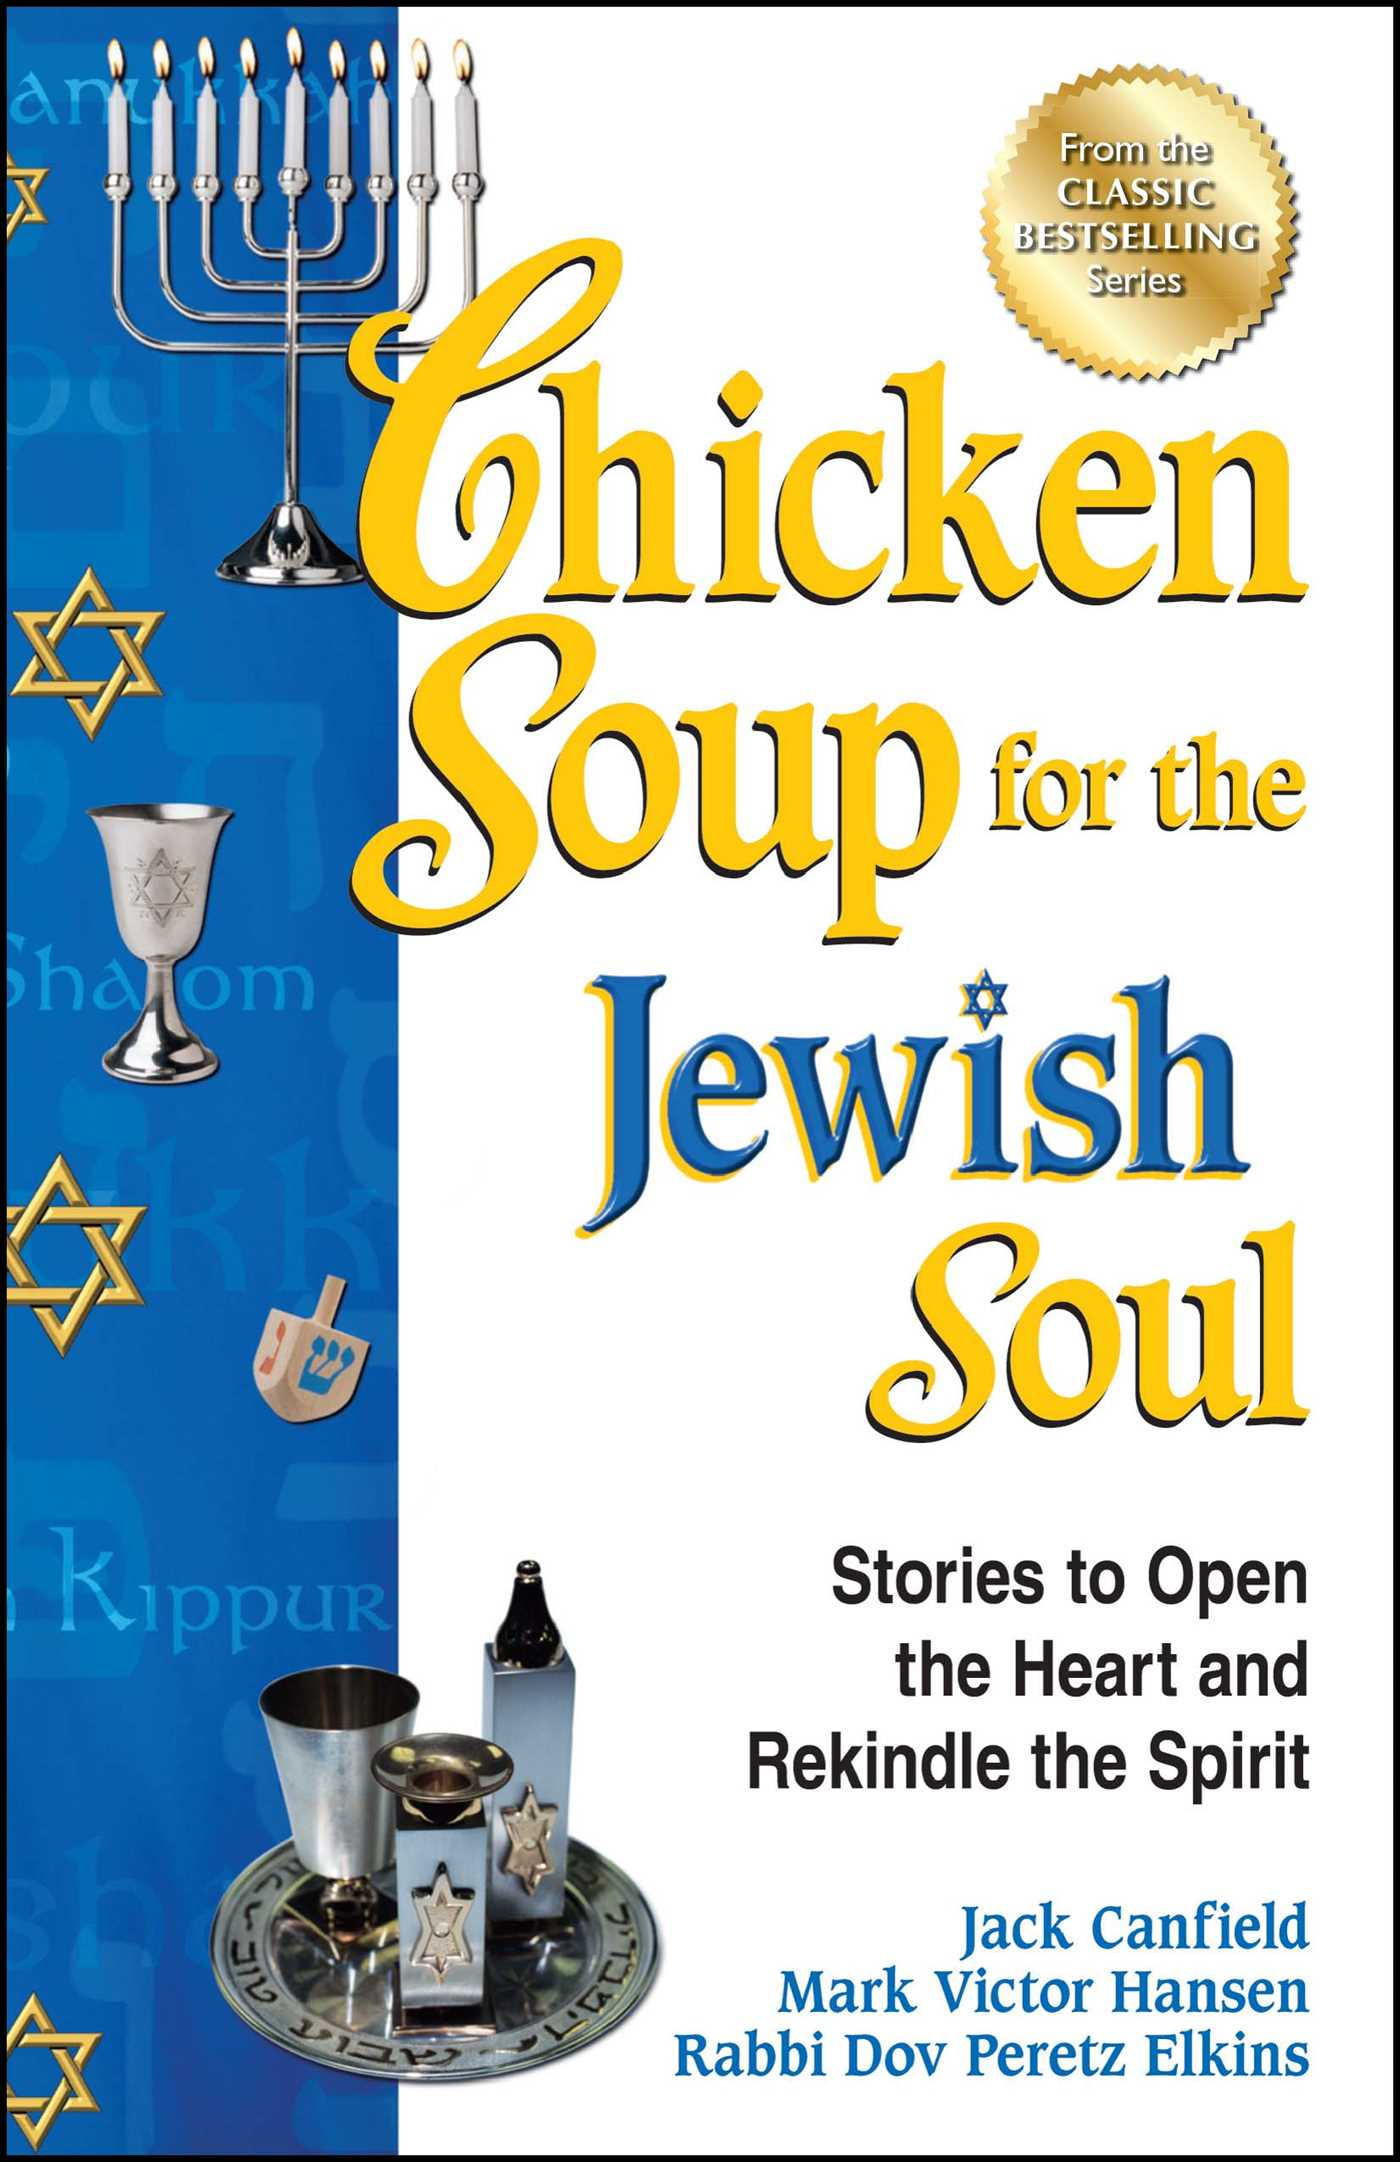 Chicken soup for the jewish soul 9781623611002 hr